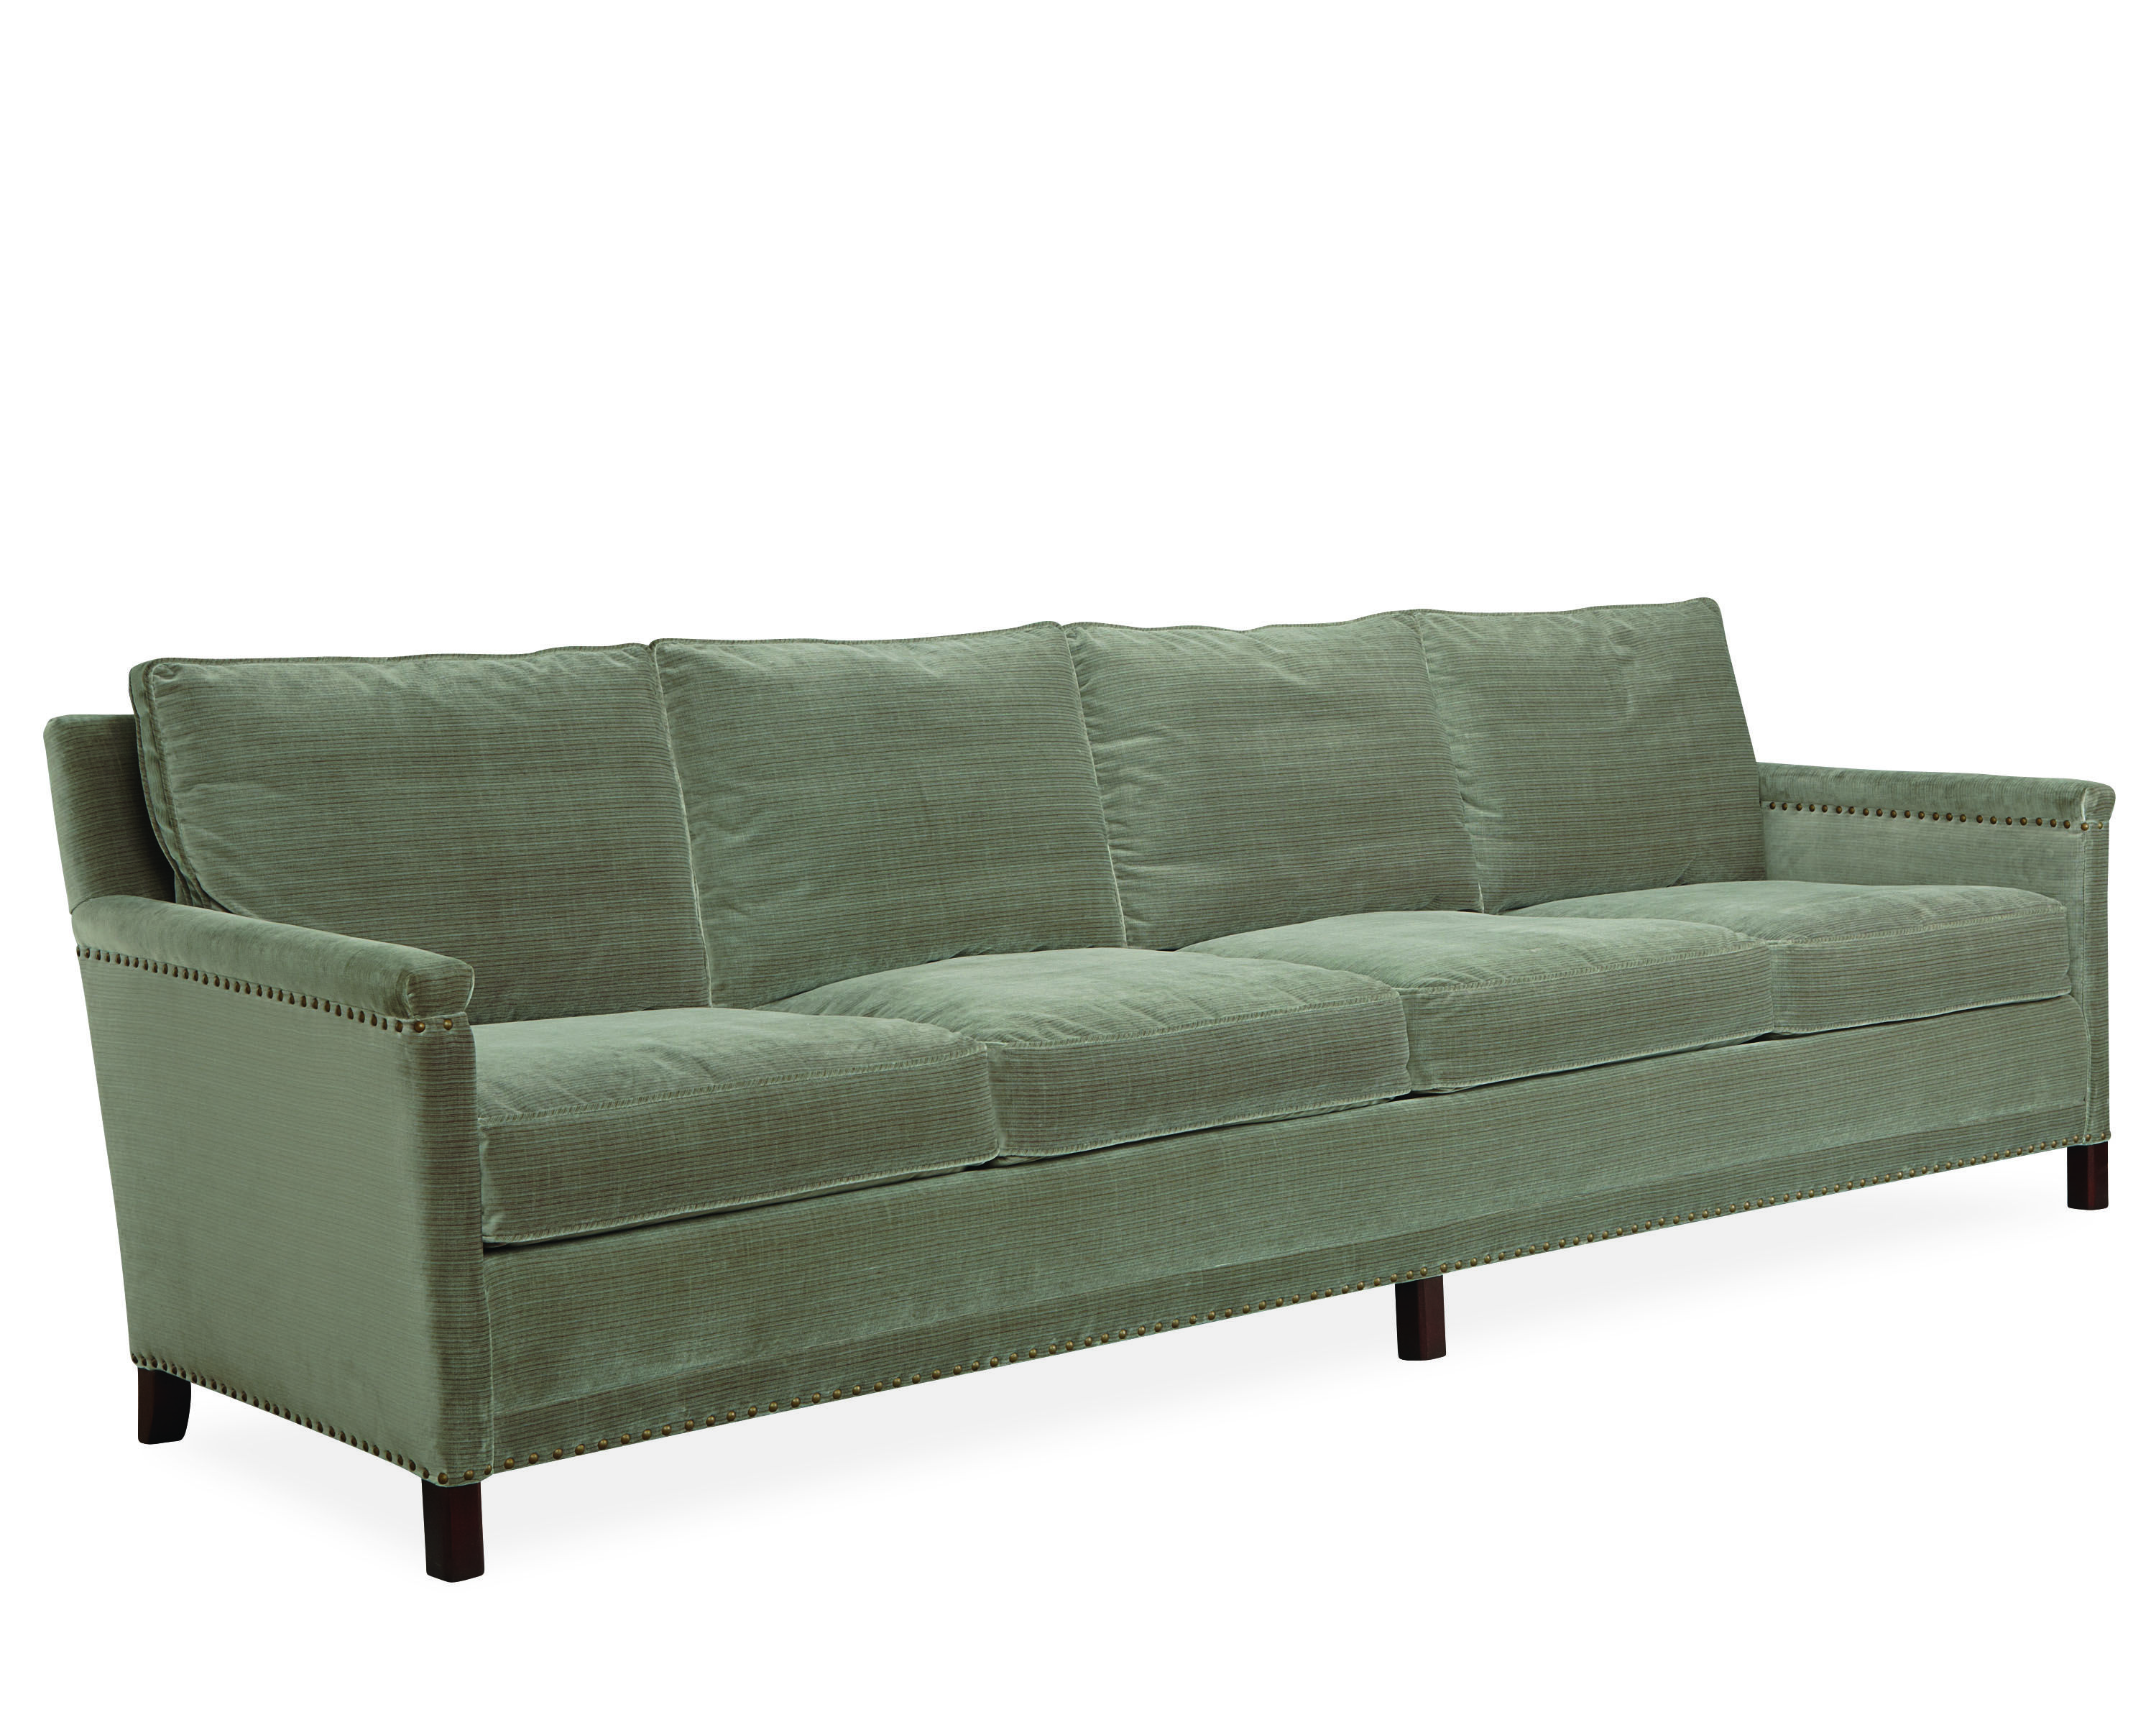 B Famous Schlafsofas Lee Industries: 1935-44 Four Cushion Sofa | Cushions On Sofa, Foam Sofa, Wicker Sofa Table